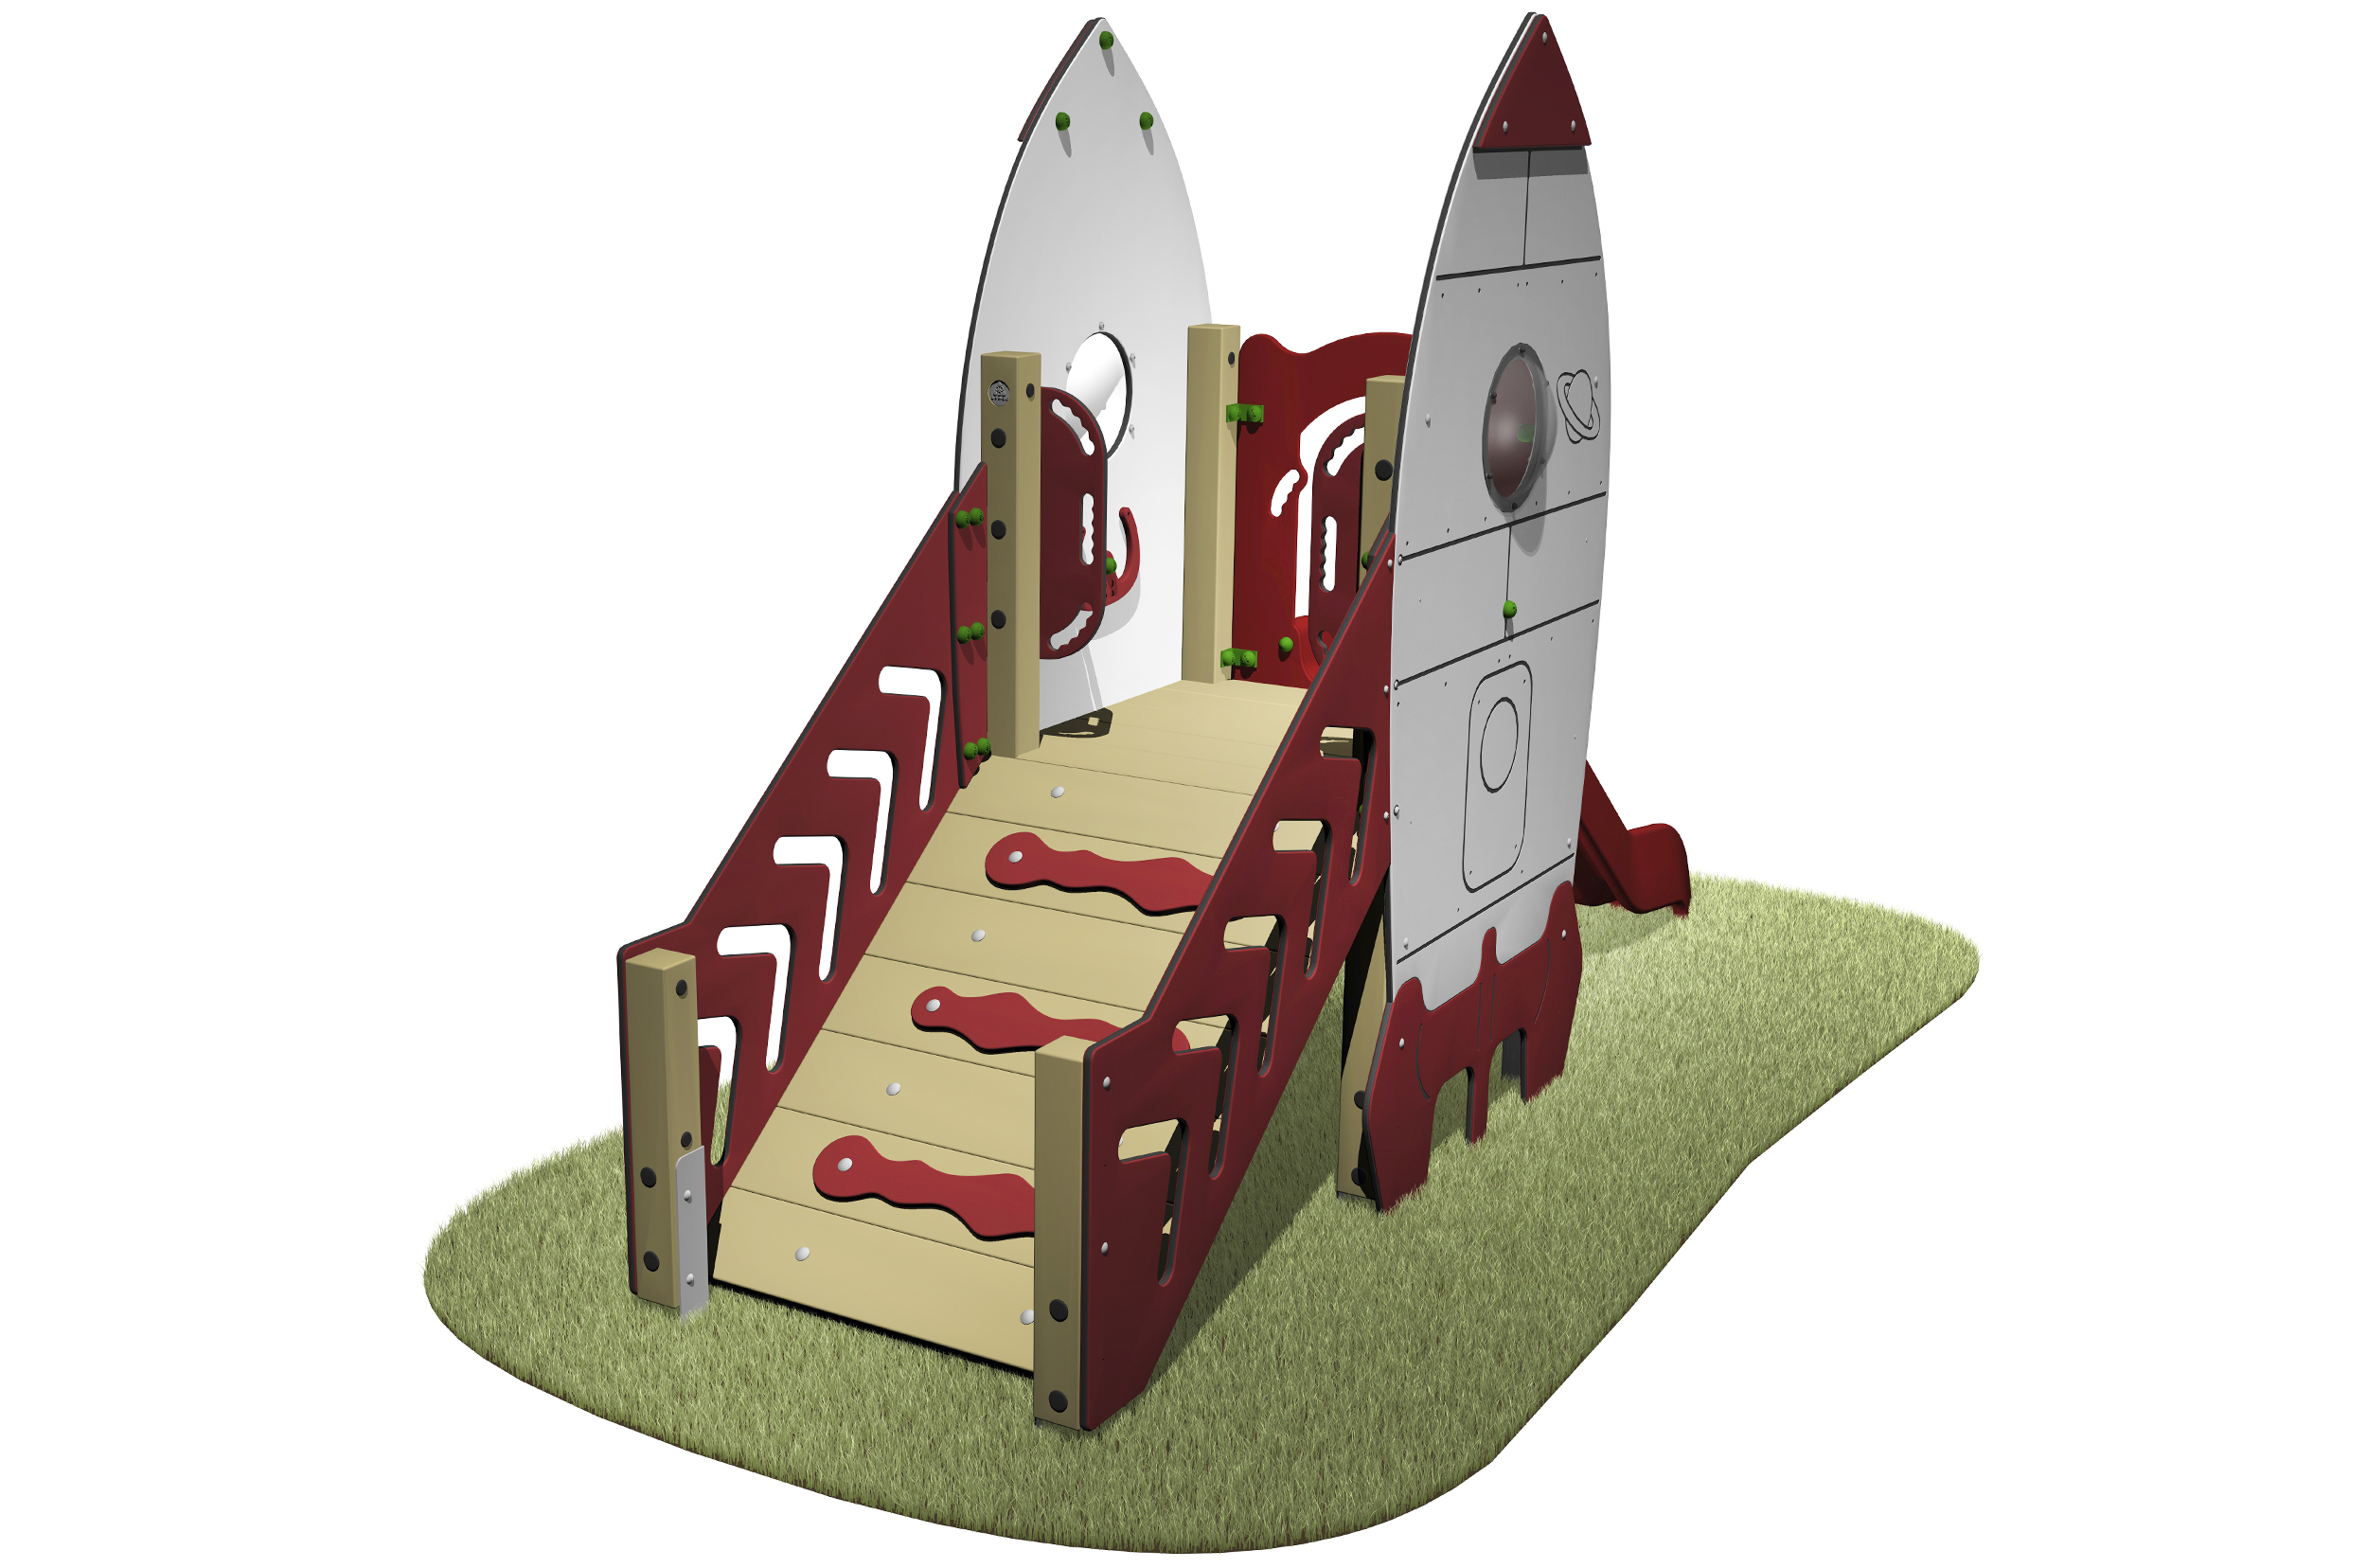 Space Rocket Slide with access ramp walkway, space rocket designed sides and red slide